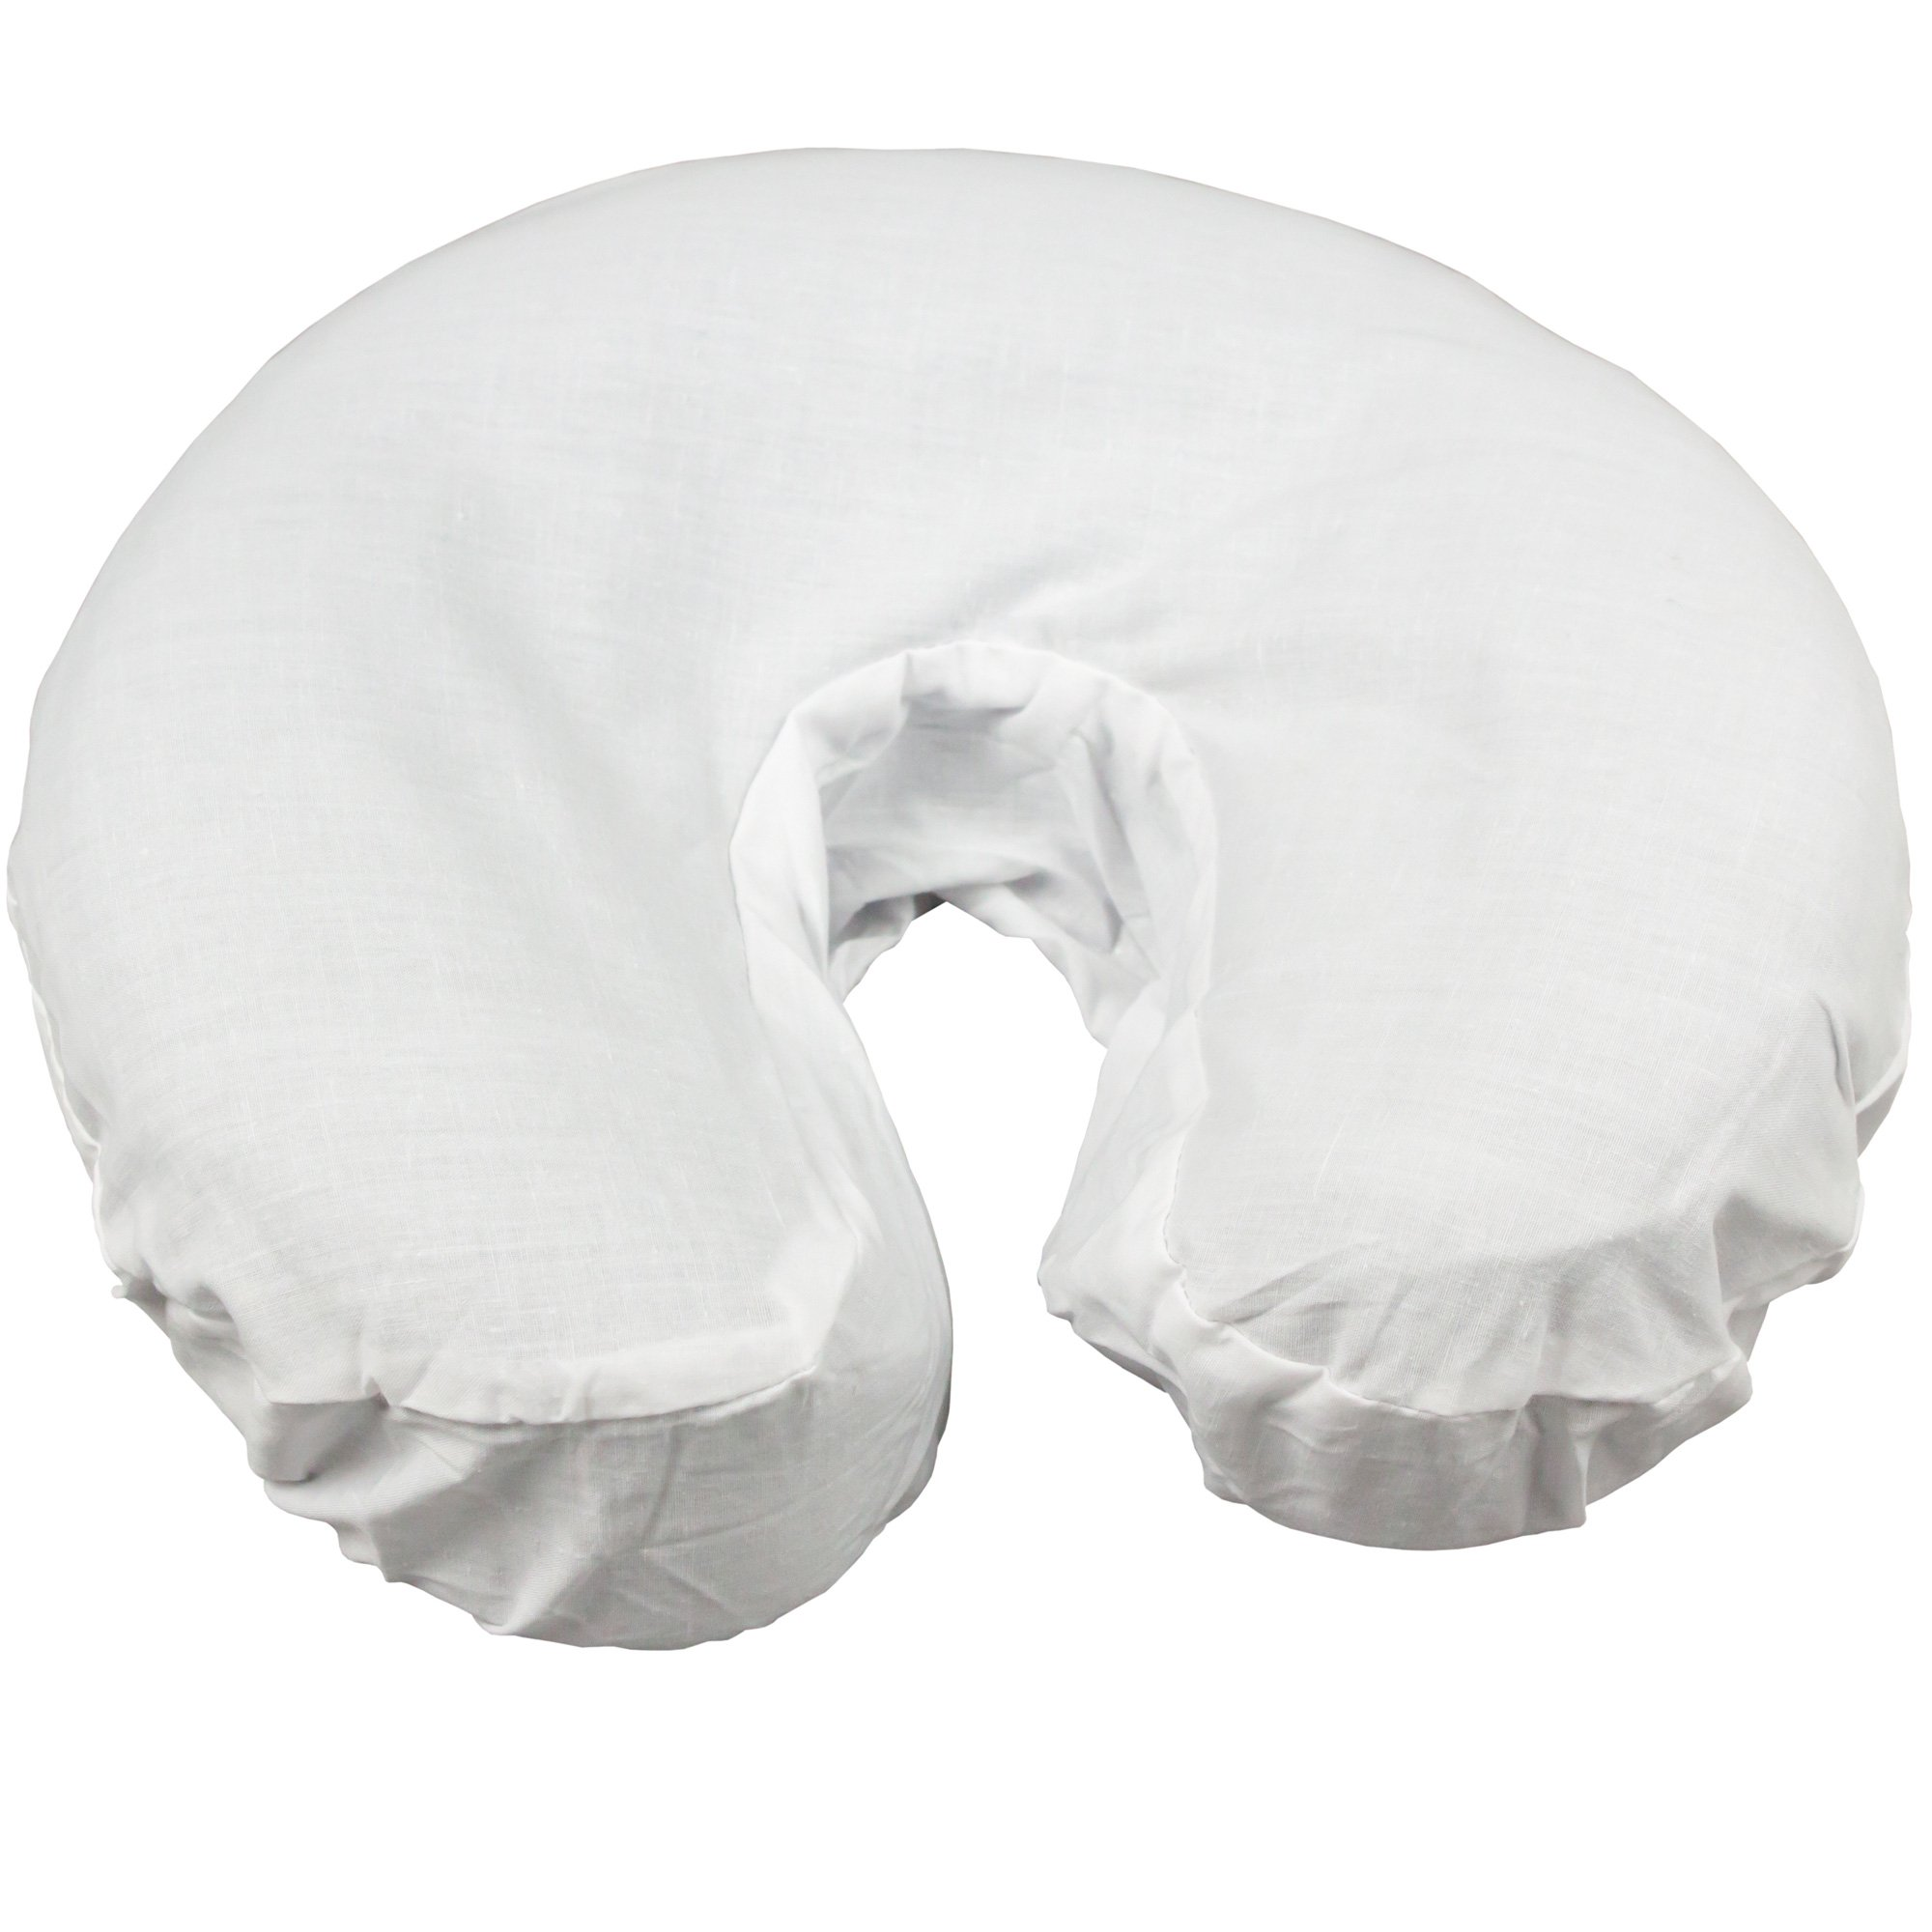 Body Linen Simplicity Poly Cotton Massage Face Cradle Covers (White, 100 Pack) - Clean, Crisp Fabric for Frequent Use and Washing, Colorfast and Latex-Free, Fits All Standard Massage Tables